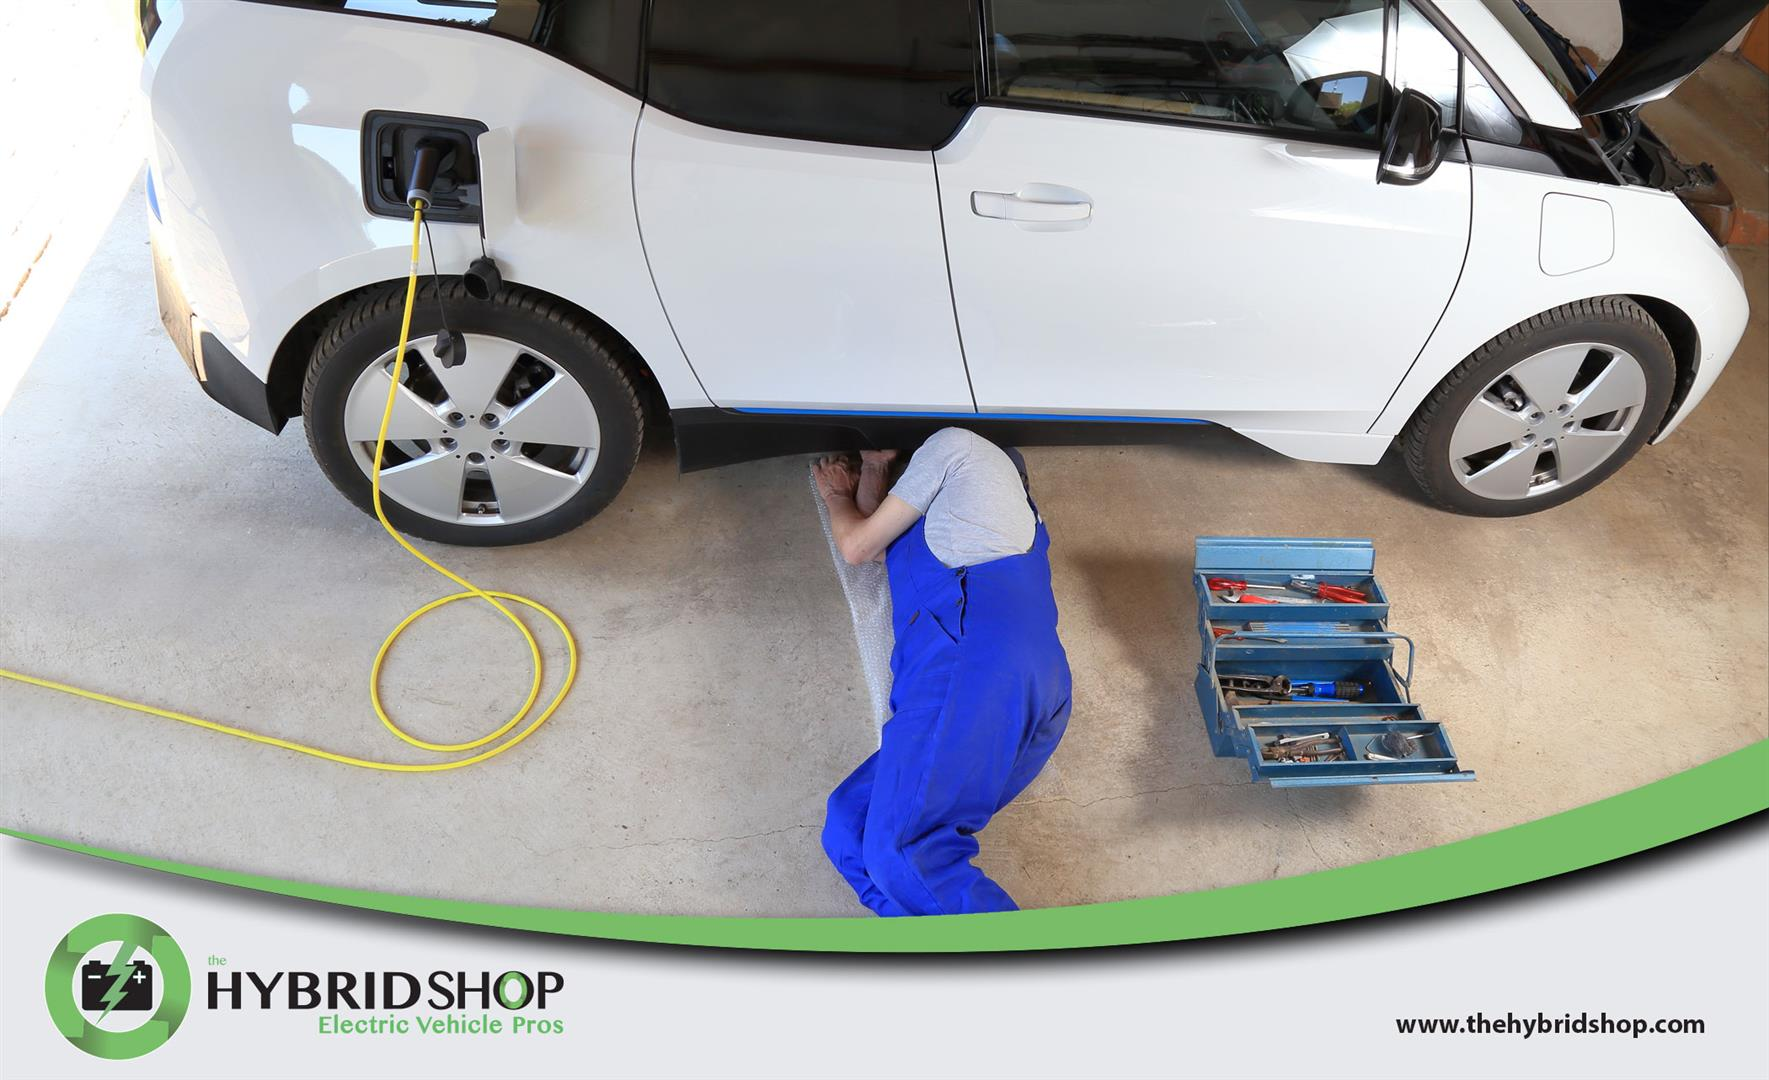 Why you should bring your hybrid to a specialty shop for repairs